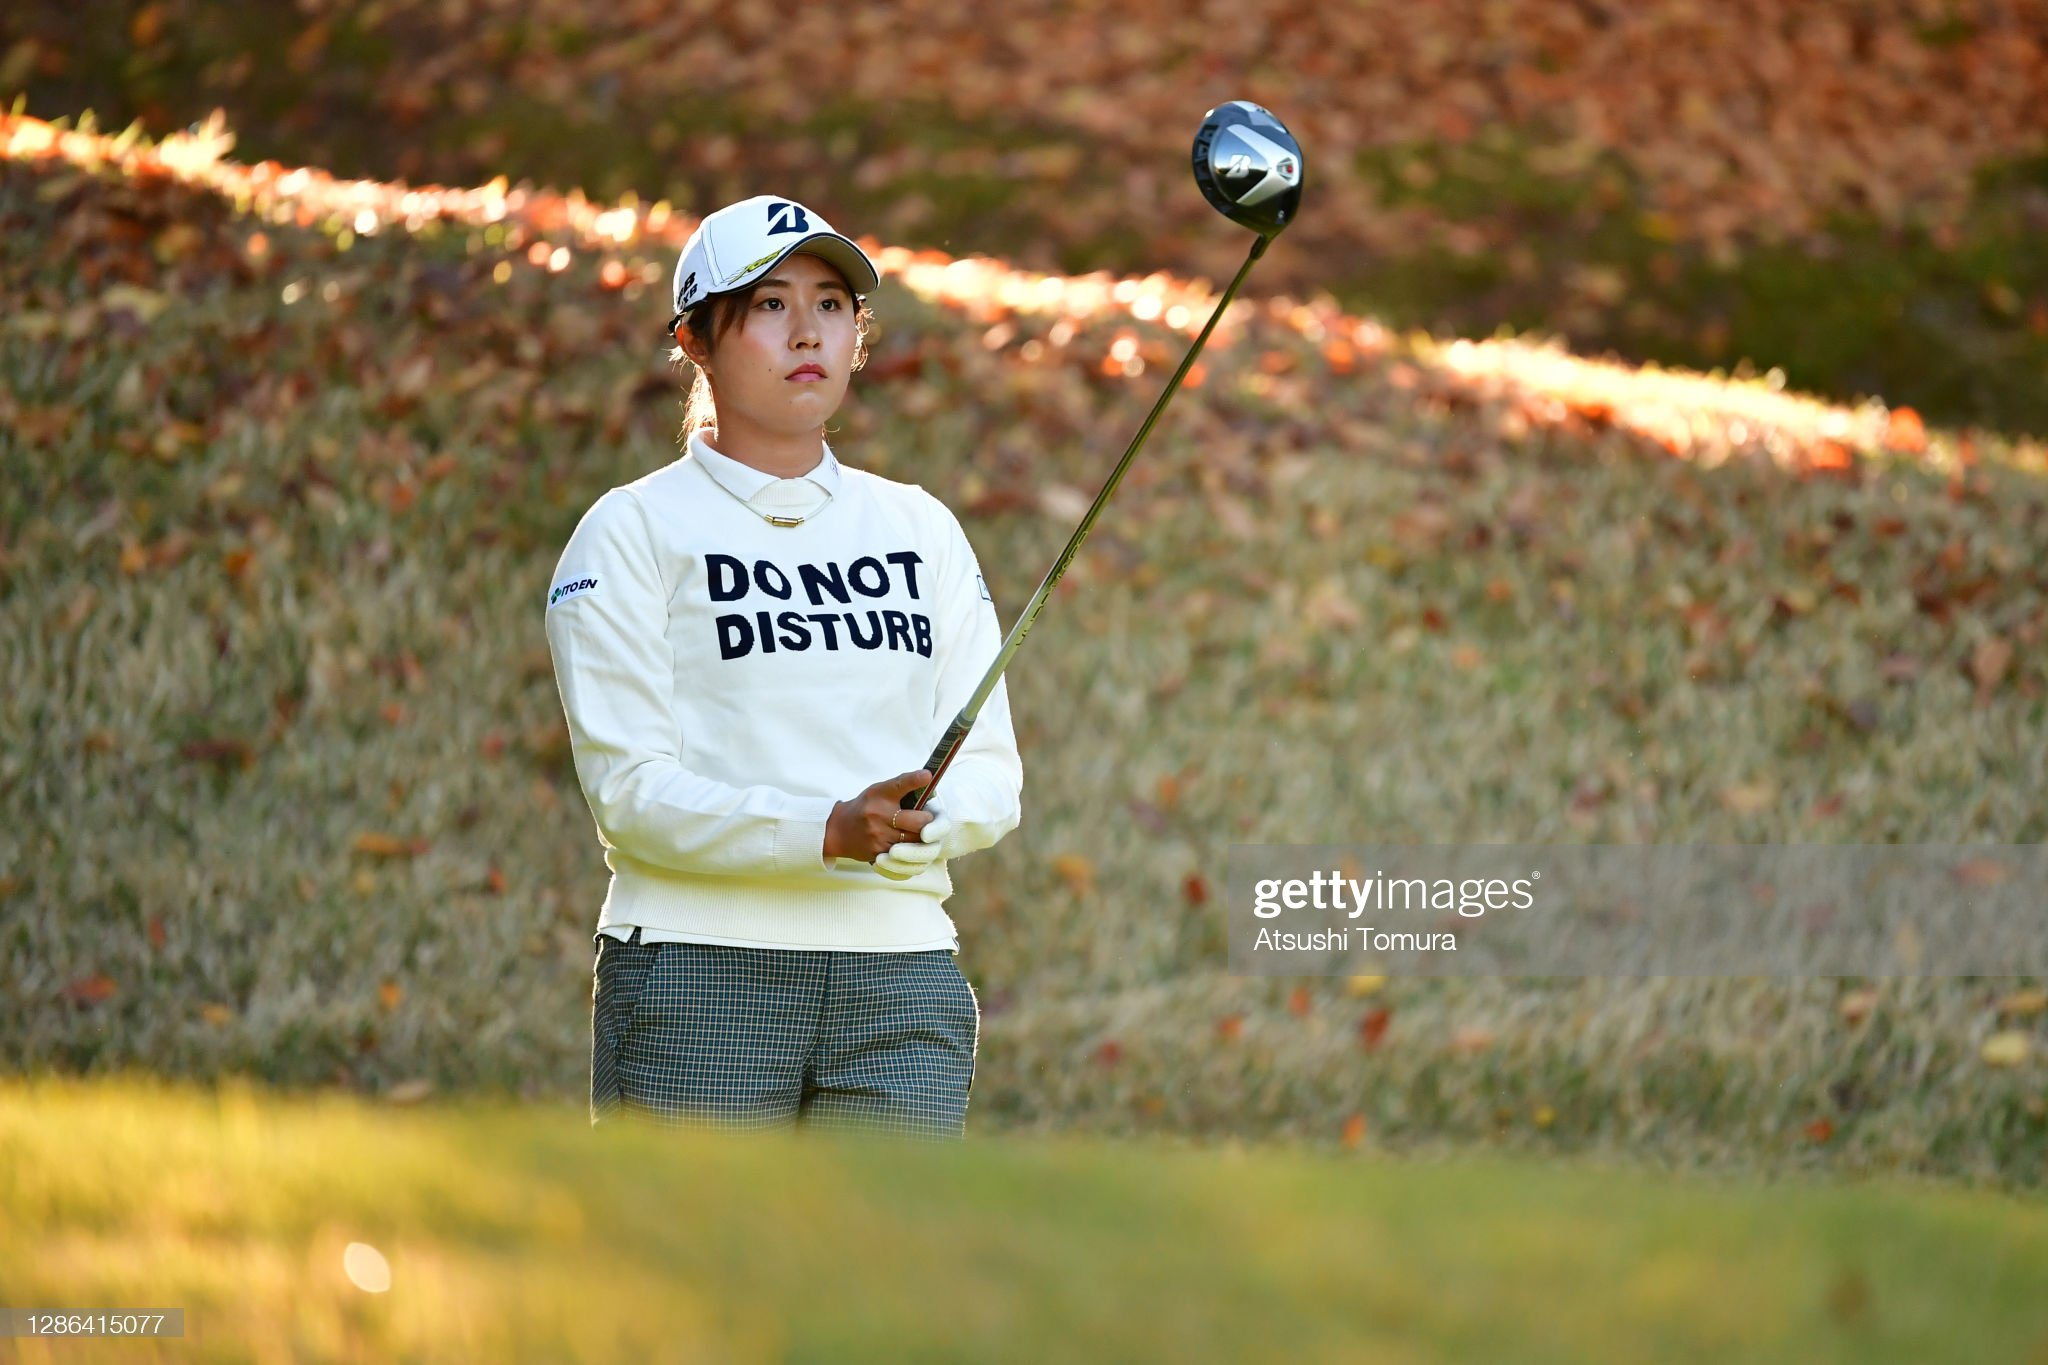 https://media.gettyimages.com/photos/momoko-osato-of-japan-prepares-for-her-tee-shot-on-the-11th-hole-the-picture-id1286415077?s=2048x2048